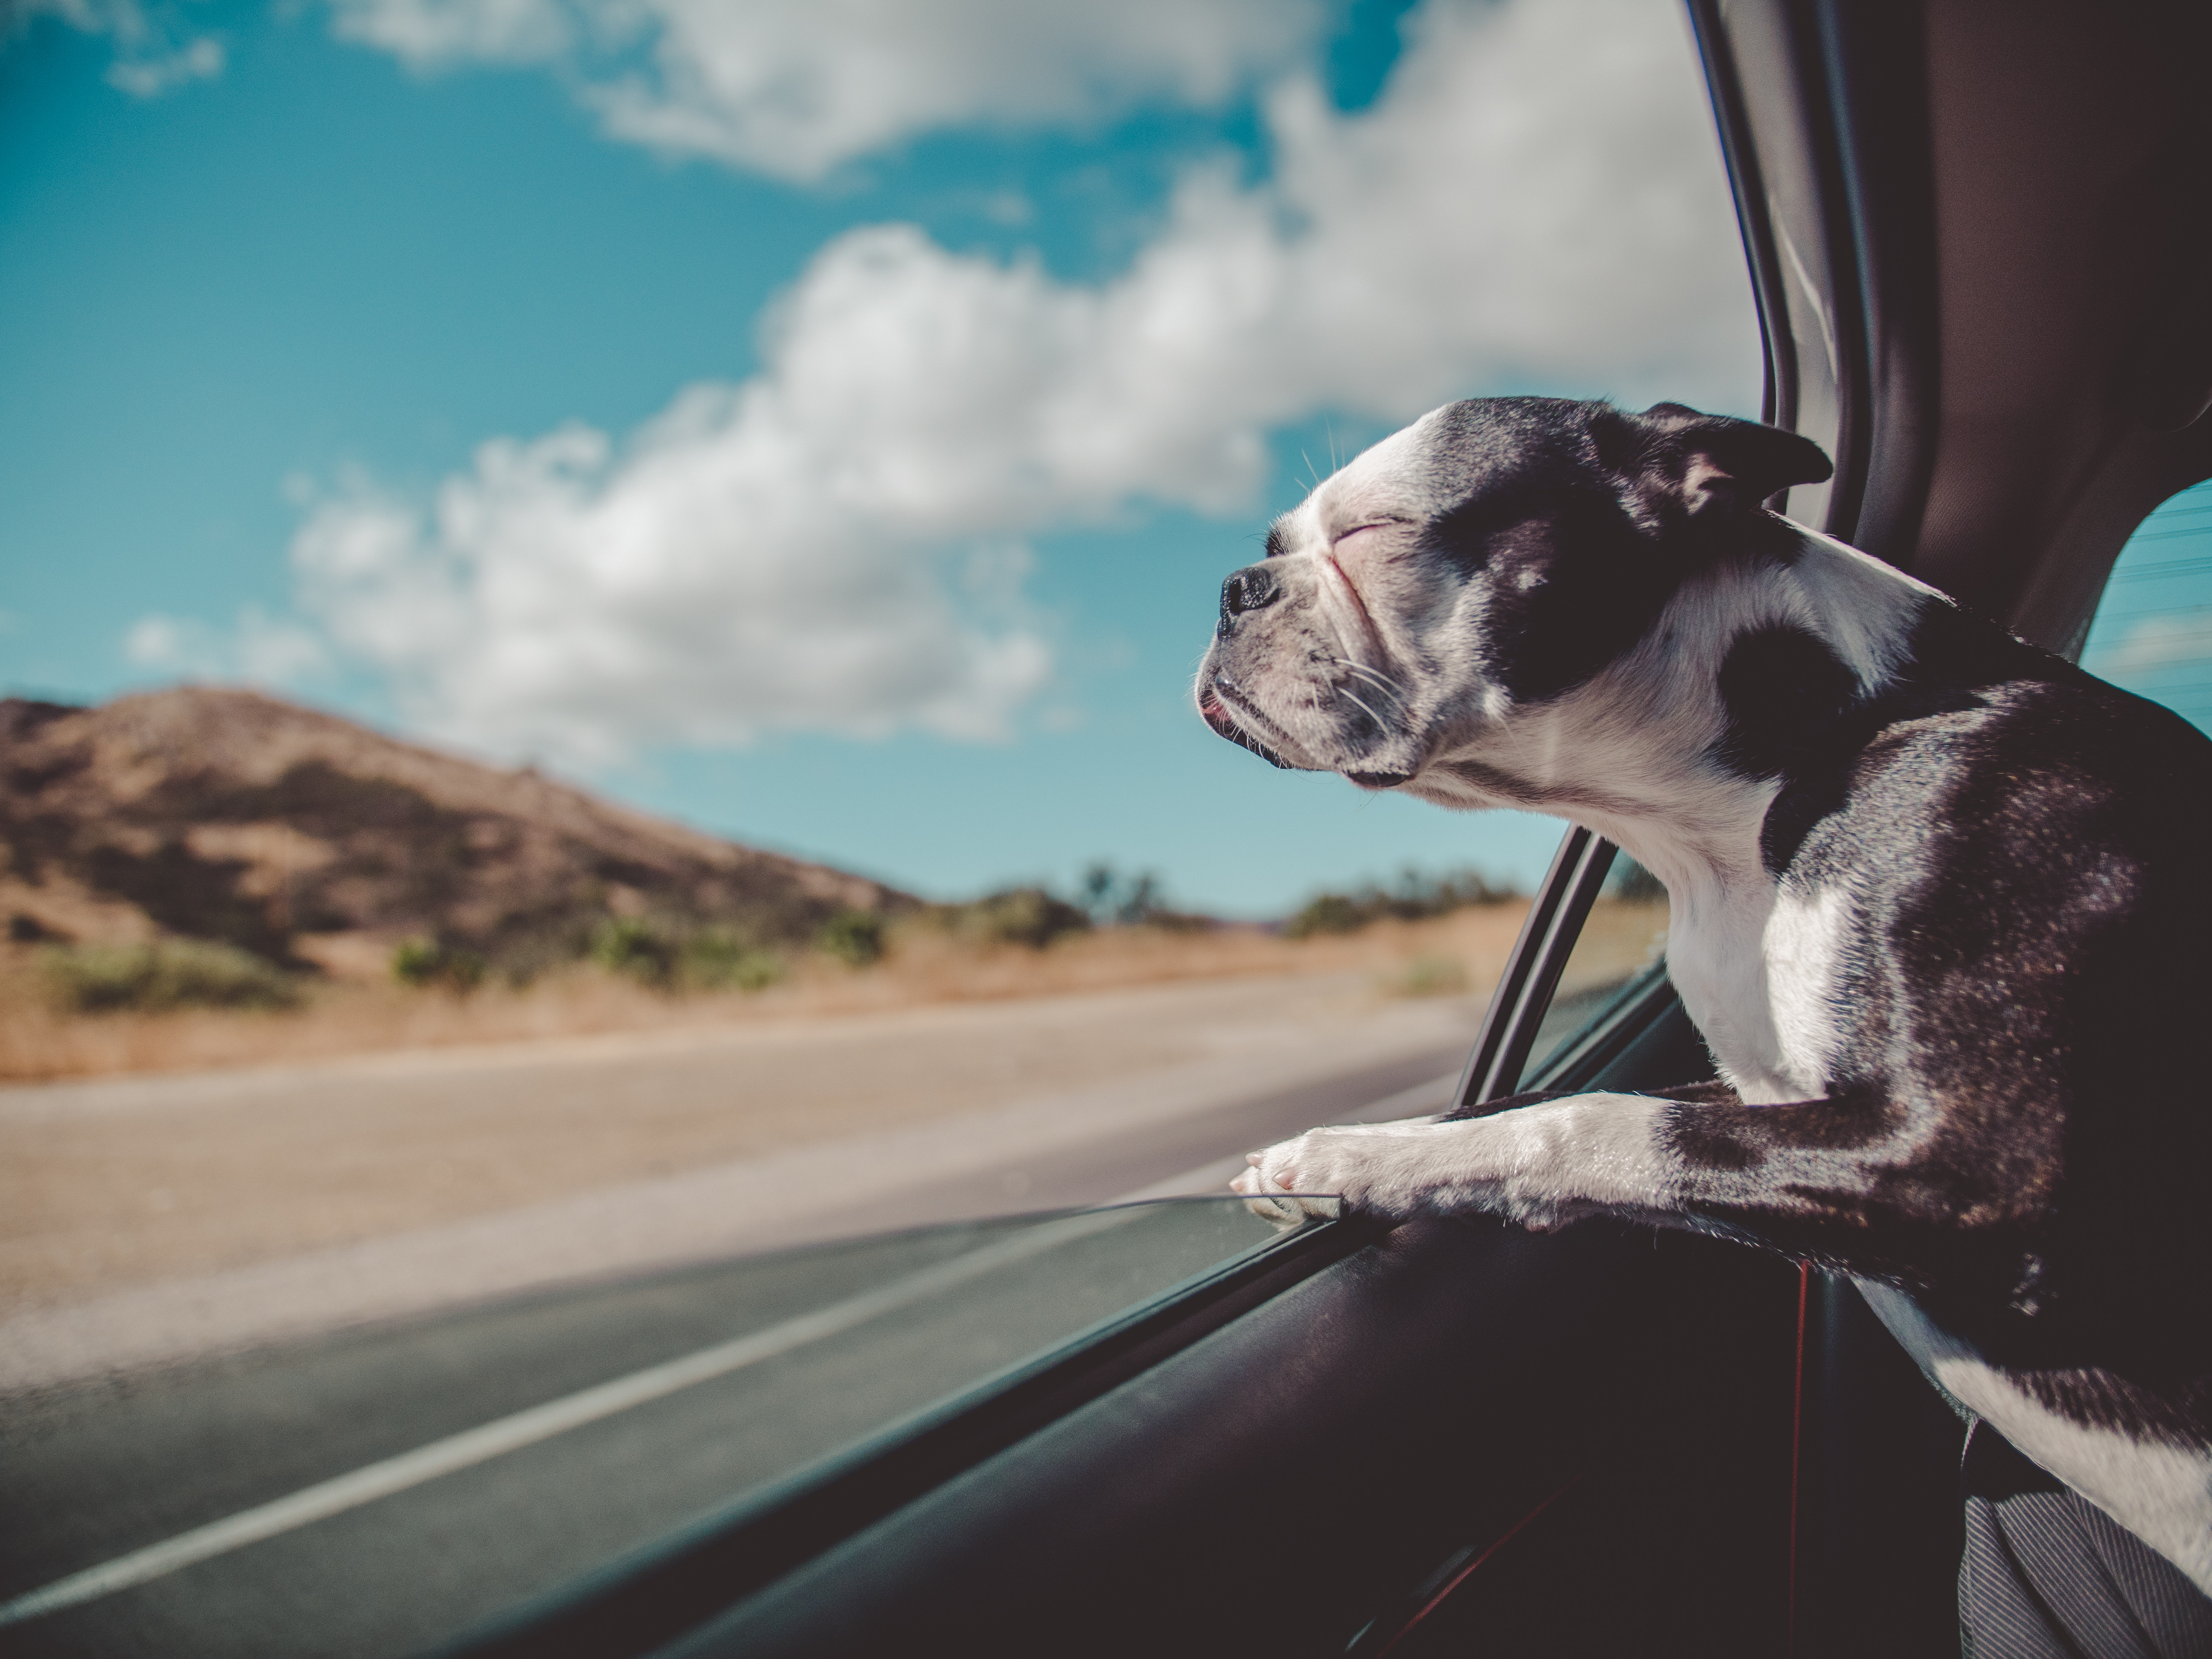 94896 download wallpaper Animals, French Bulldog, Dog, Window, Peek Out, Look Out, Journey screensavers and pictures for free